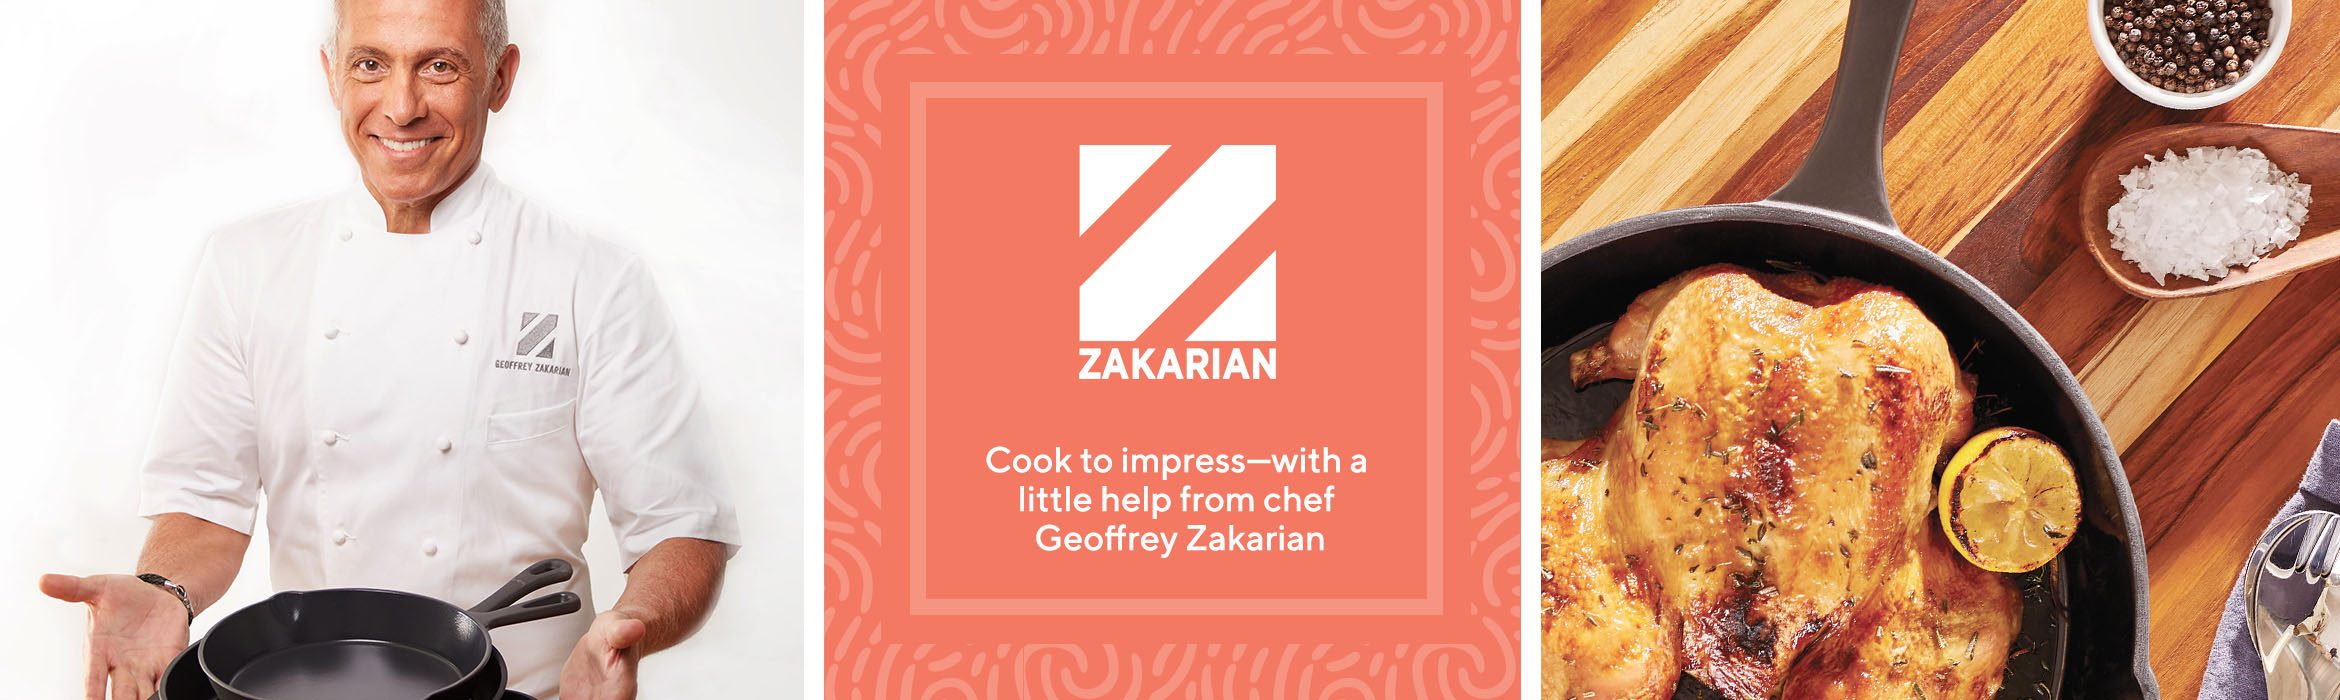 Cook to impress—with a little help from chef Geoffrey Zakarian